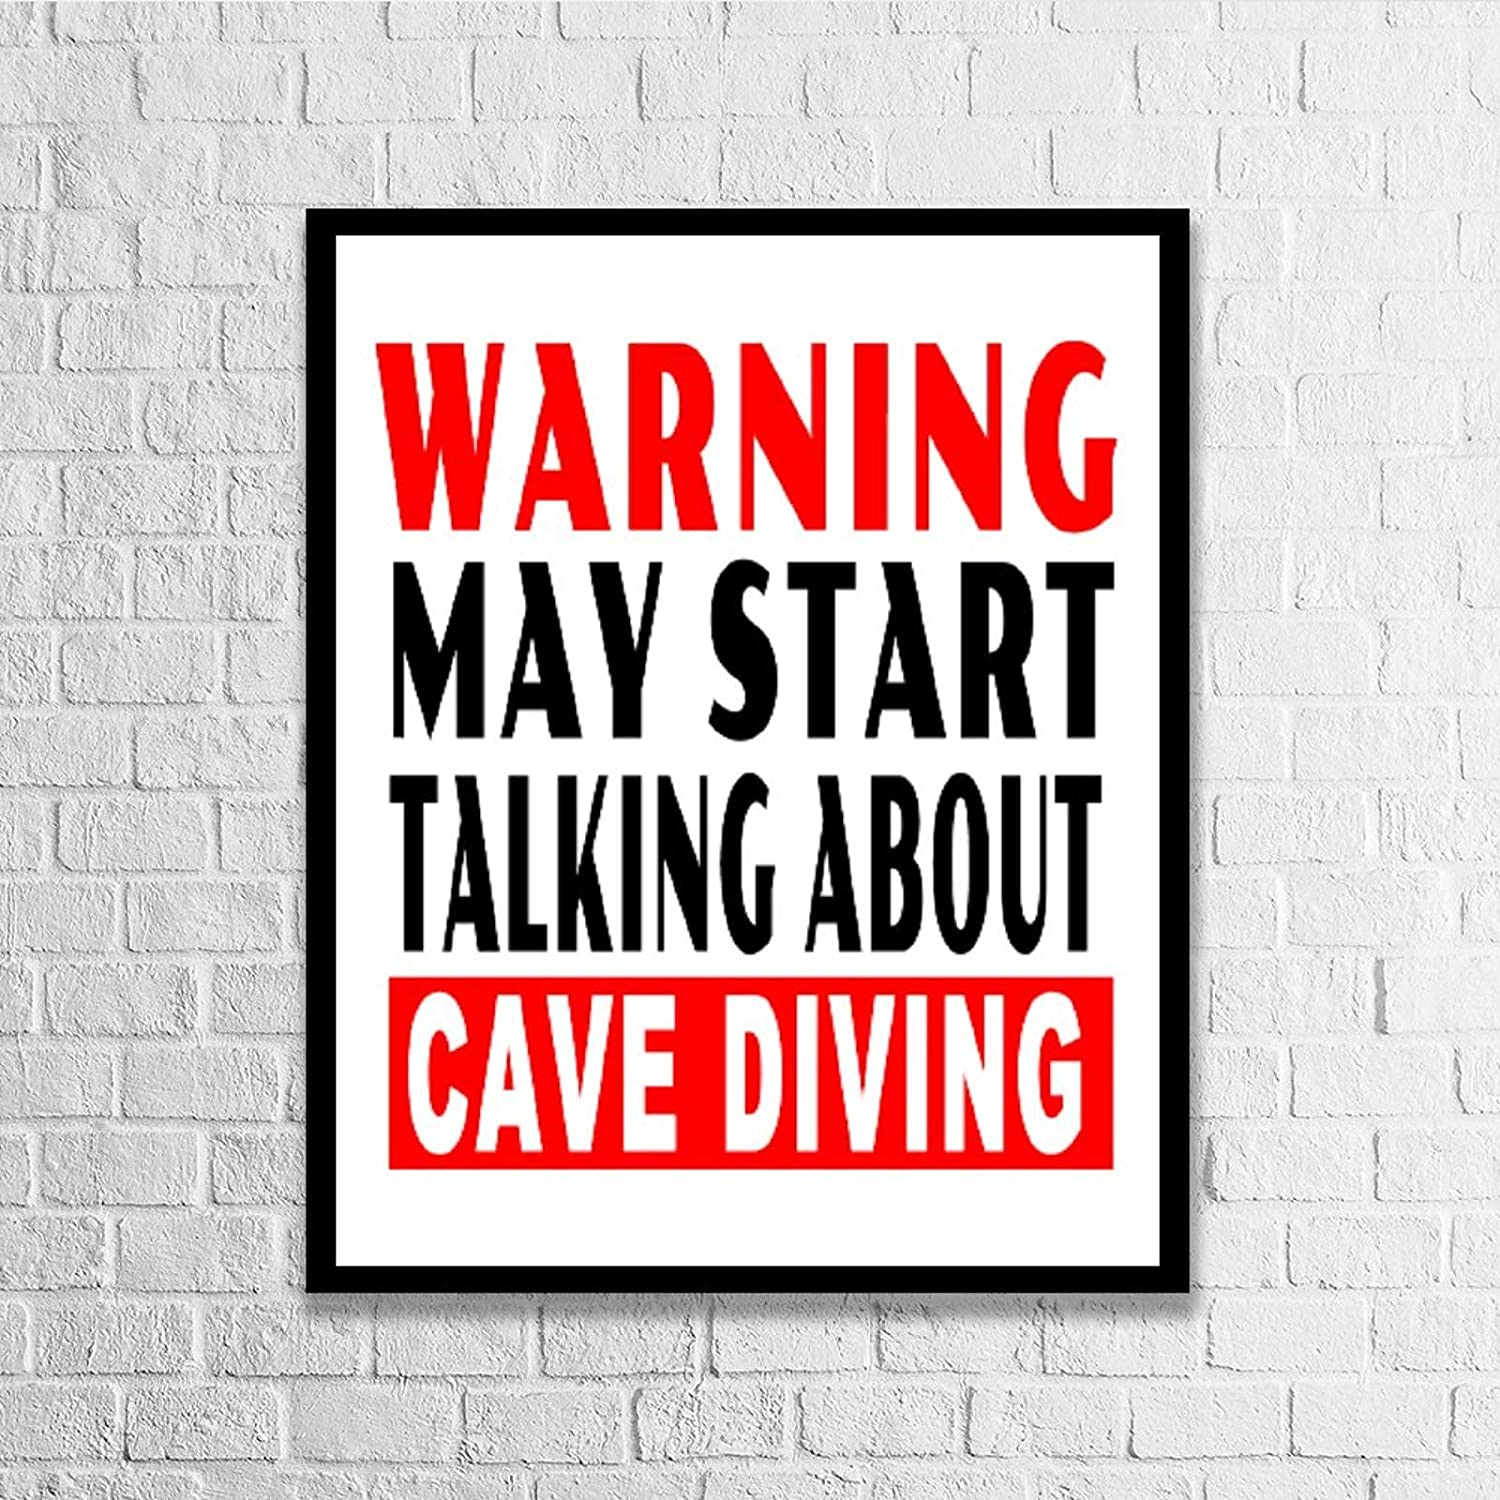 Blafitance Wood Framed Signs Warning May Start Talking About Cave Diving Wooden Plaque Wall Art Posters Home Décor for Living Room Thanksgiving Christams Gifts 16x20